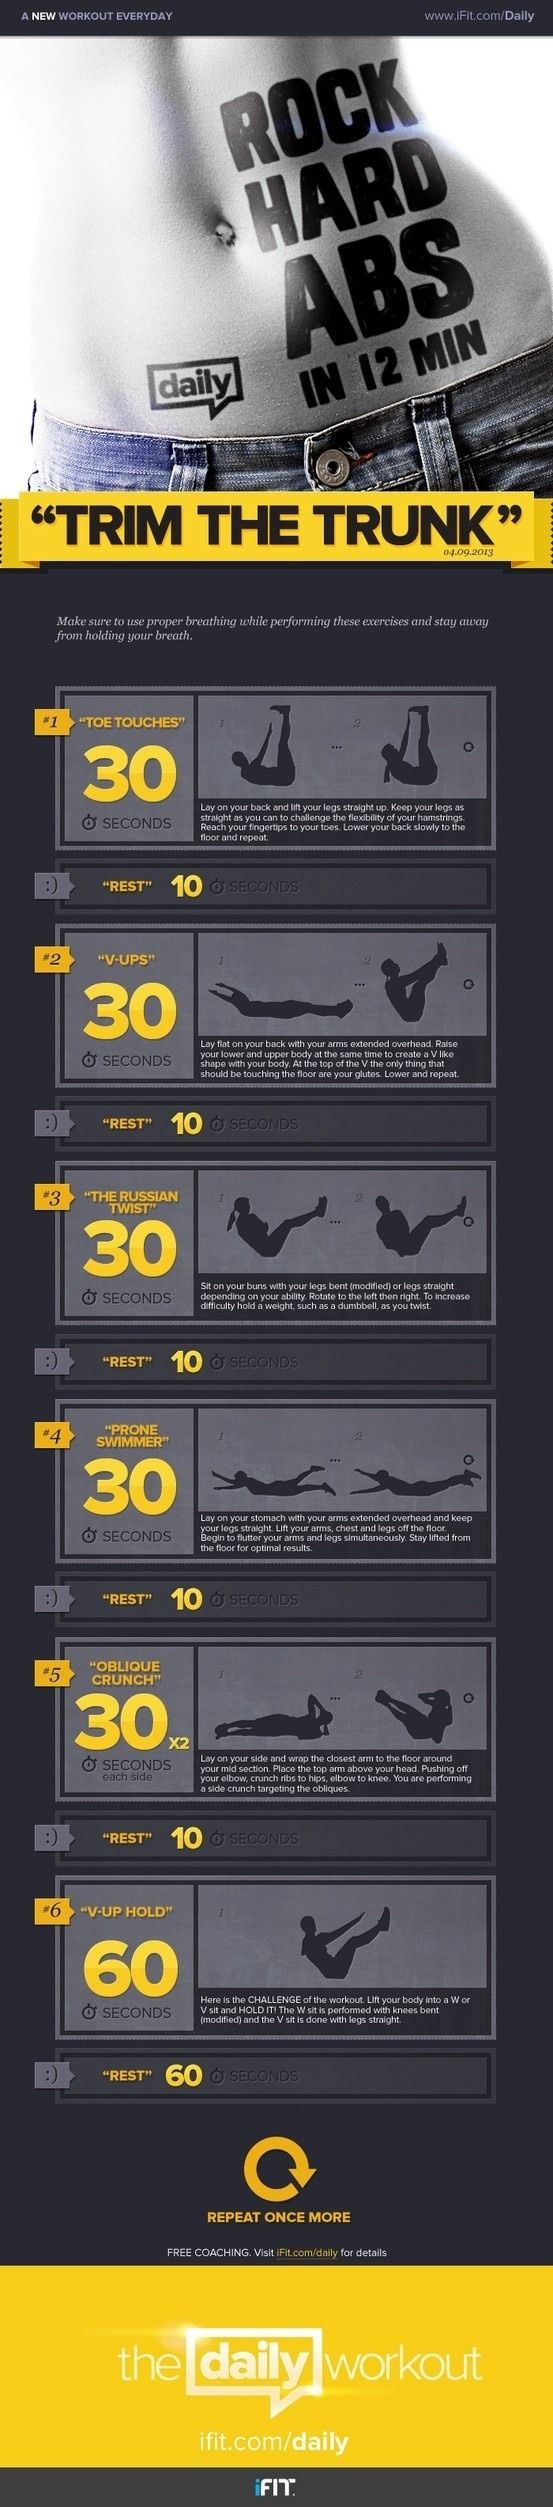 Extremely Effective 12 Minute Ab Workout!